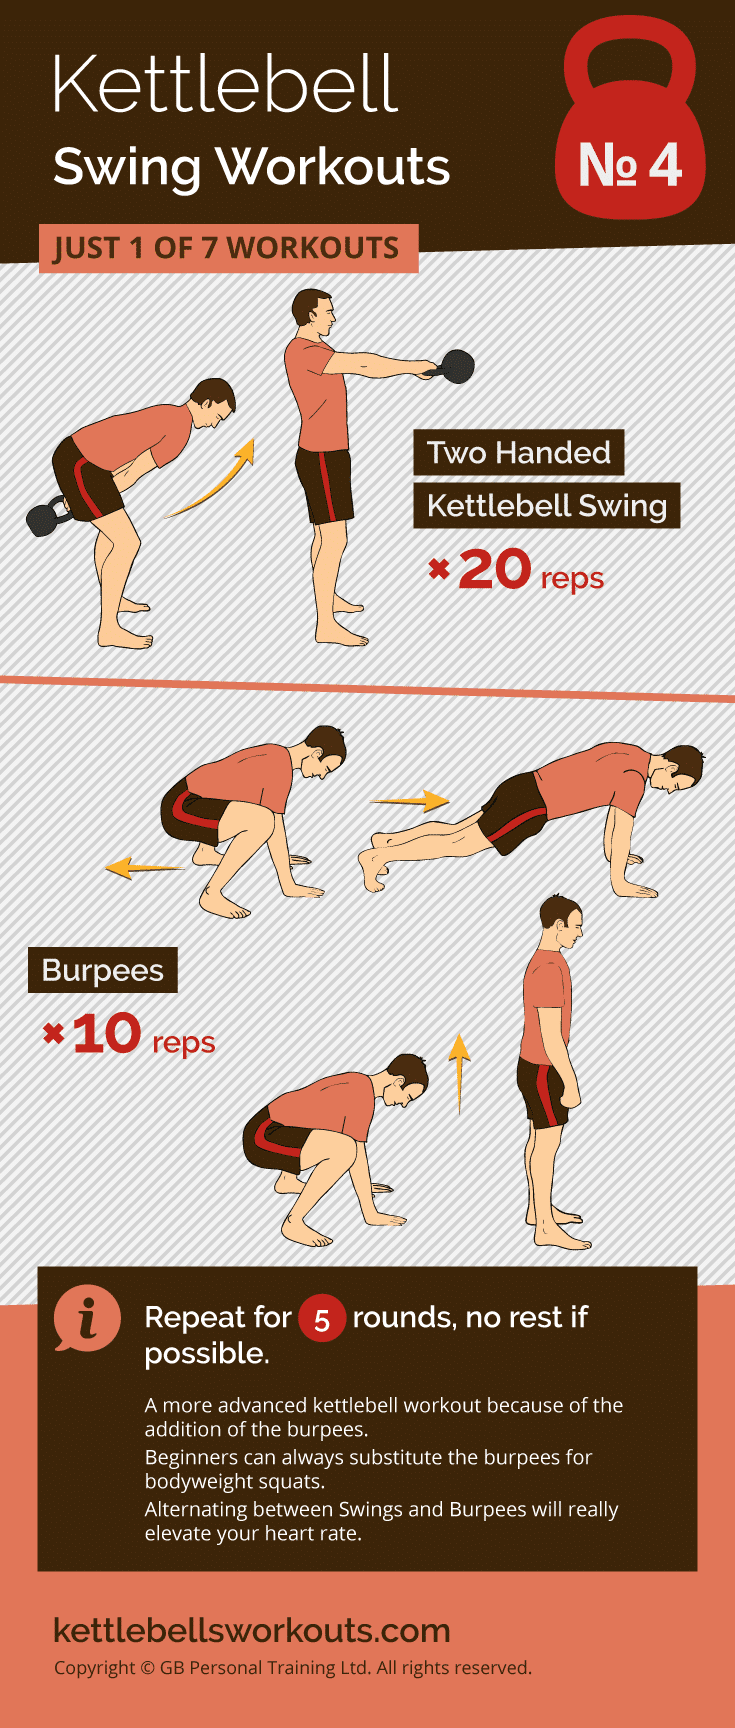 kettlebell swing workout No. 2